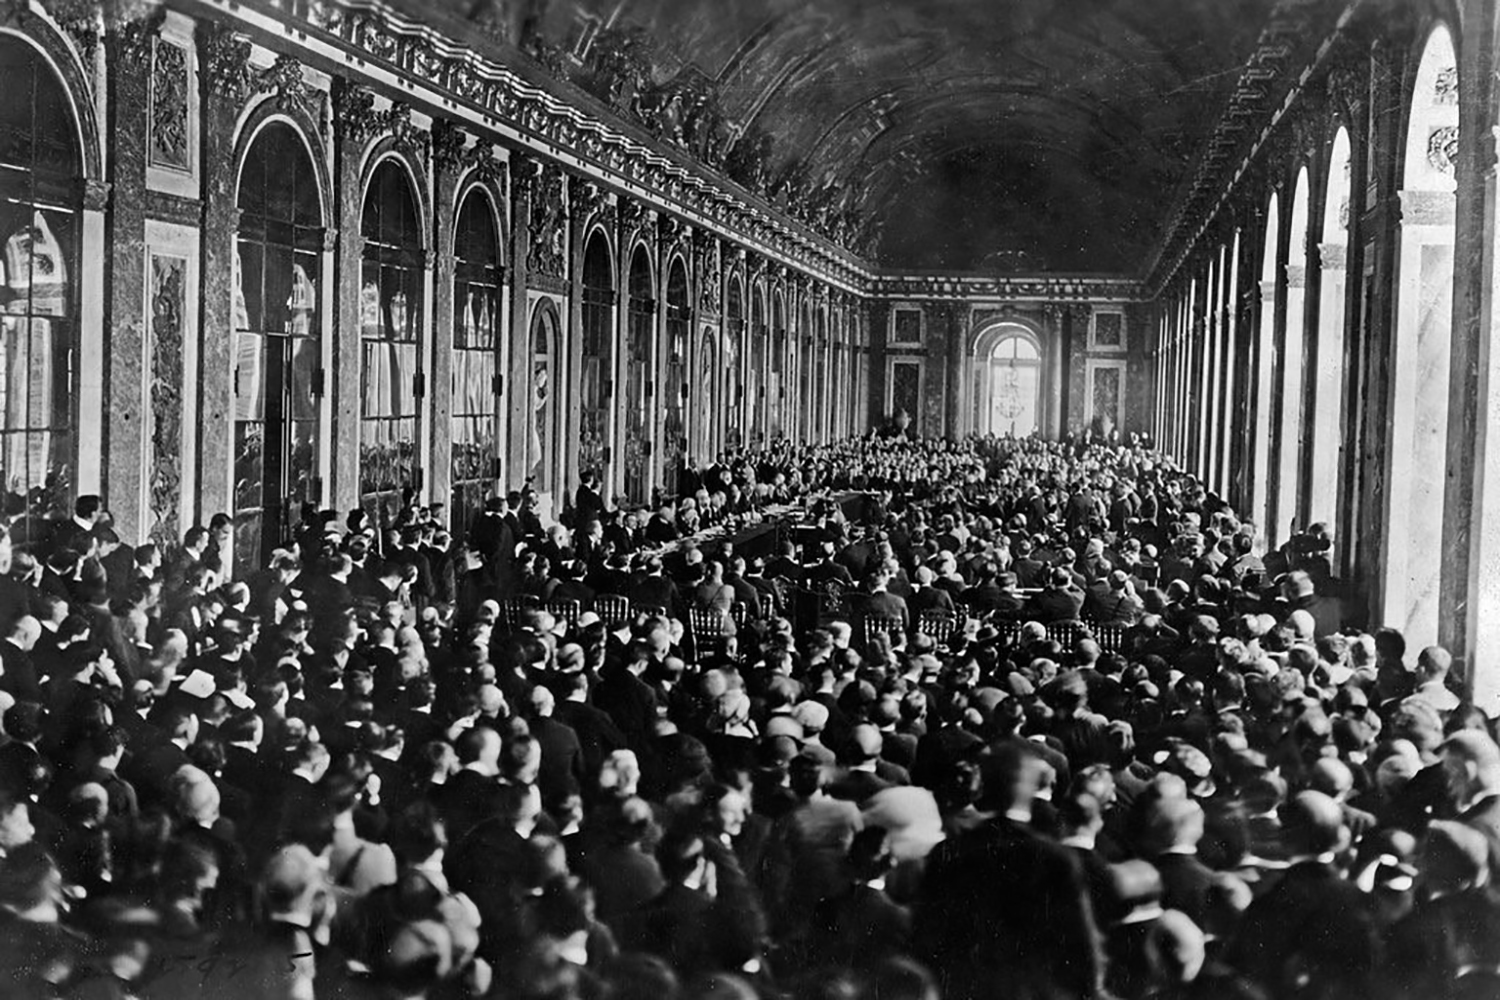 Review Perils Of Reading History >> From Versailles To Davos Confronting Historic Perils